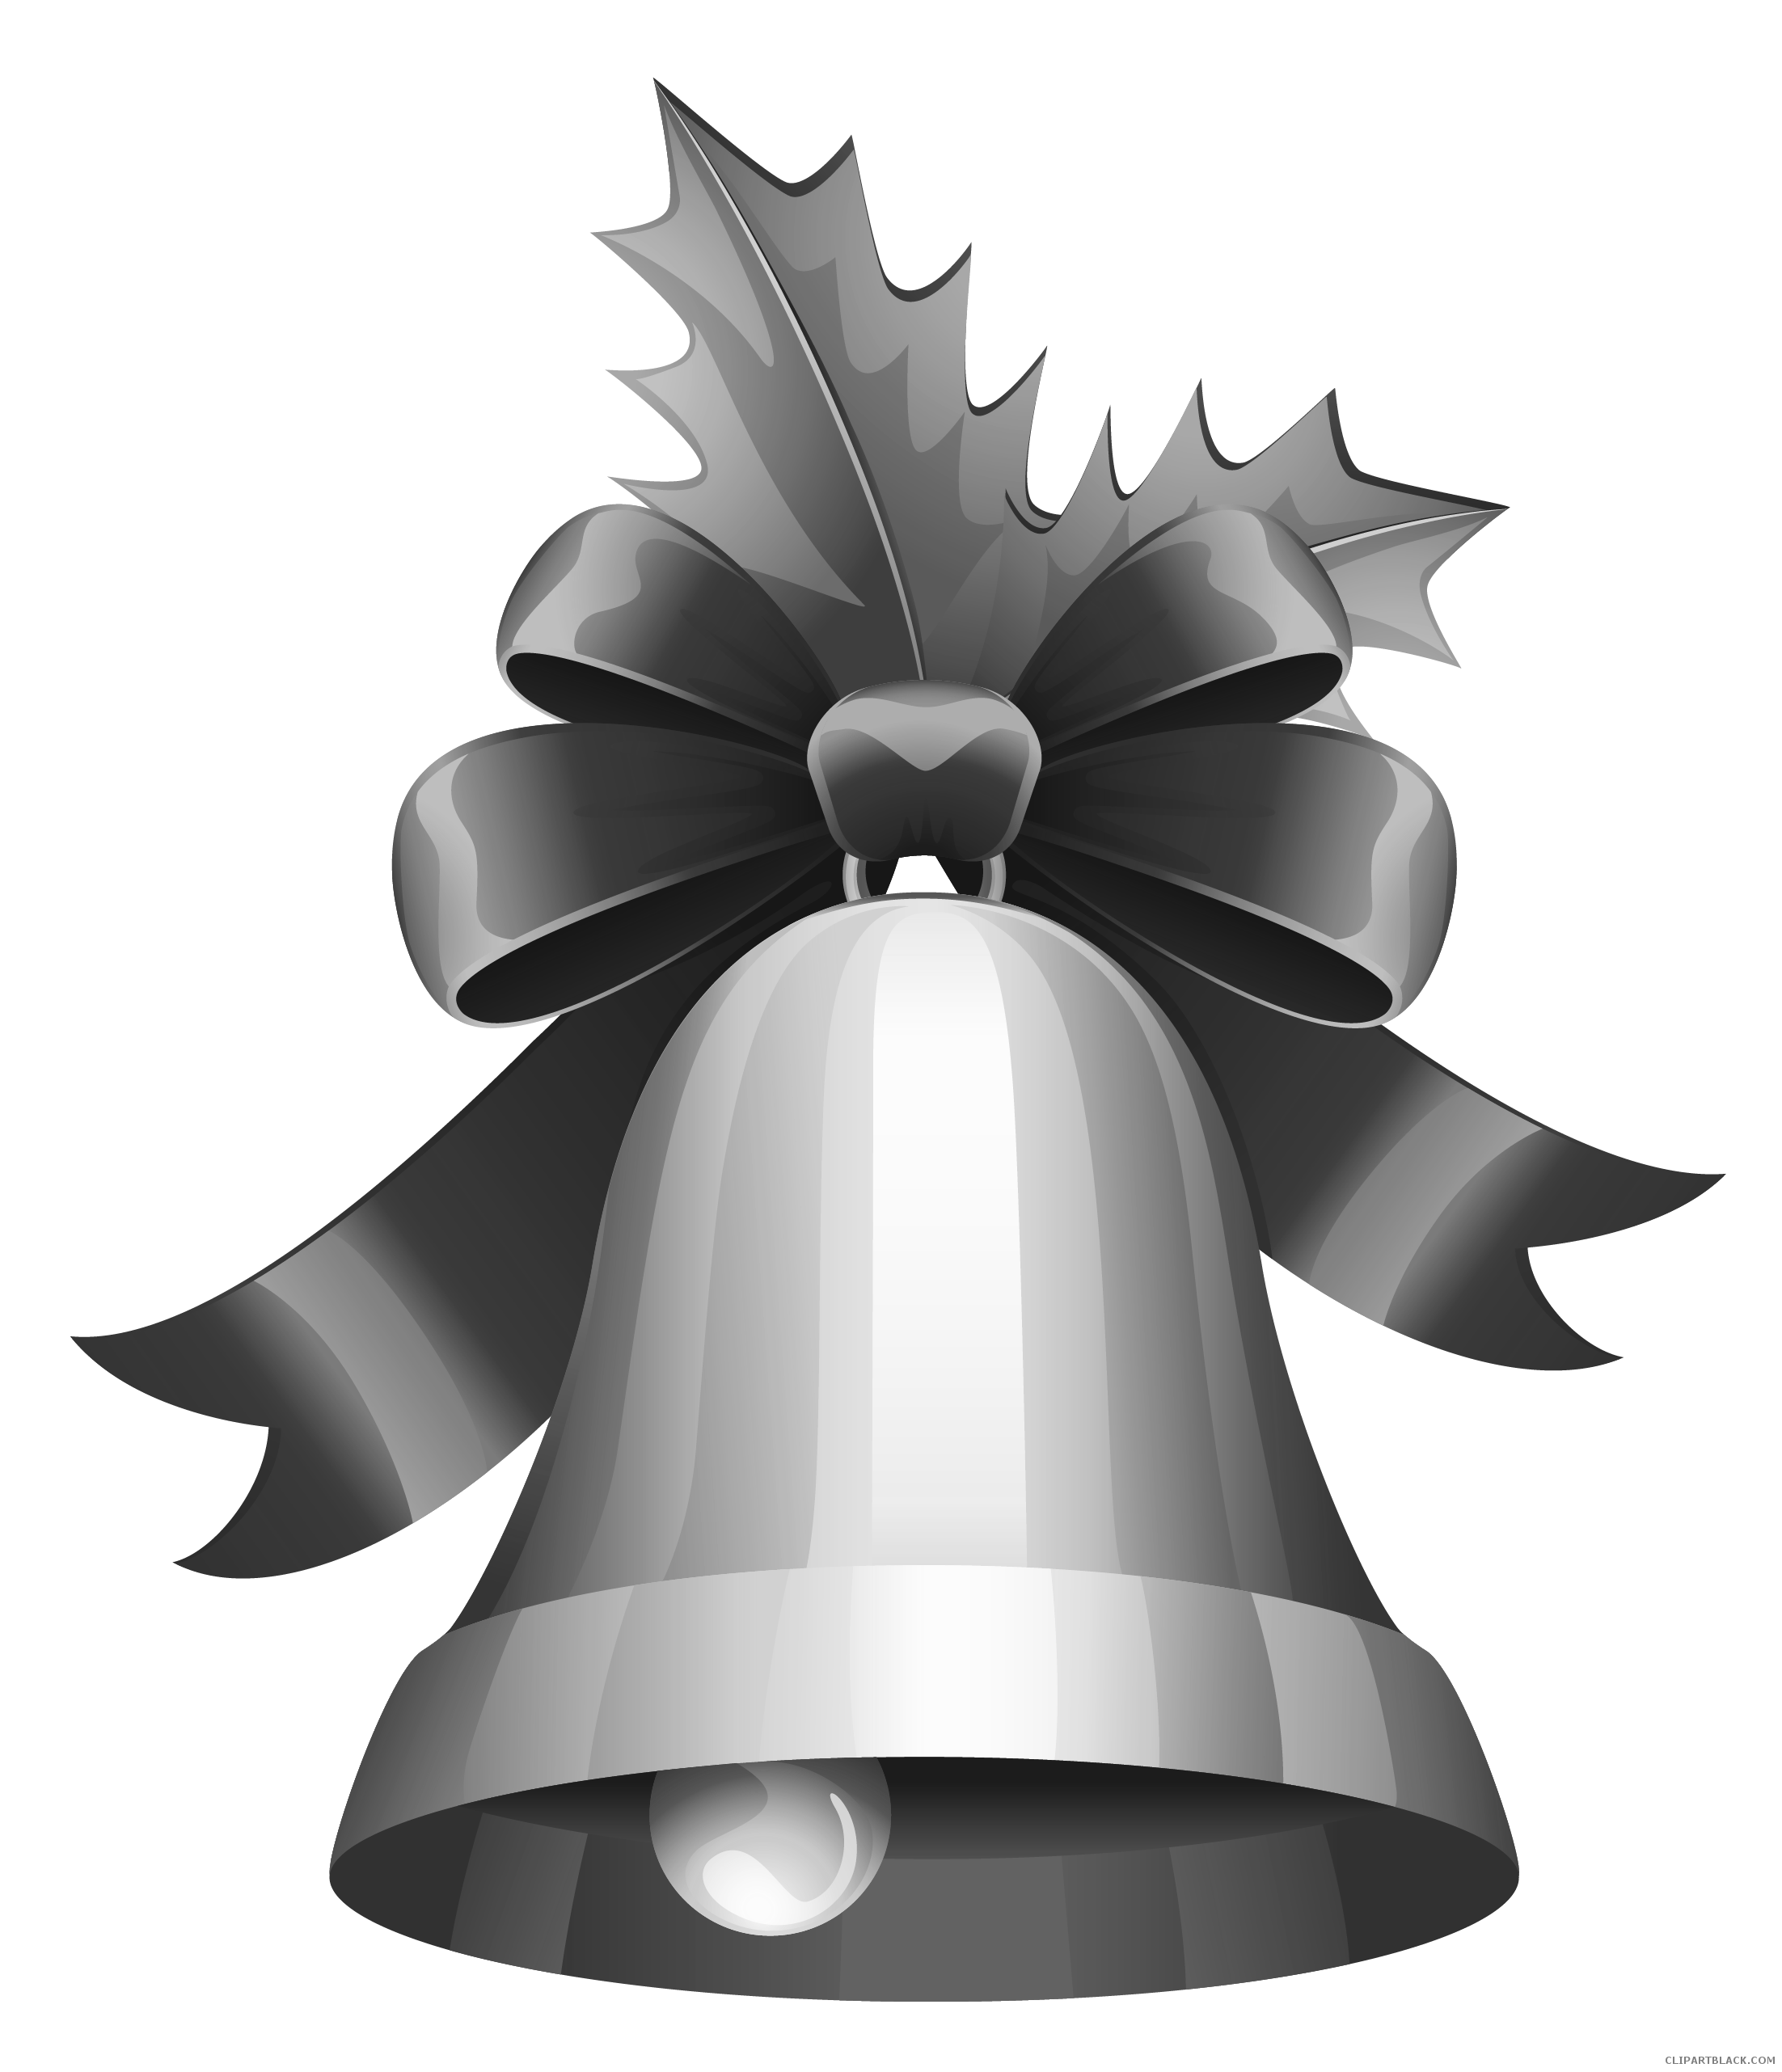 Christmas bells black and white clipart image black and white library Christmas Bell Clipart - Page 3 of 4 - ClipartBlack.com image black and white library